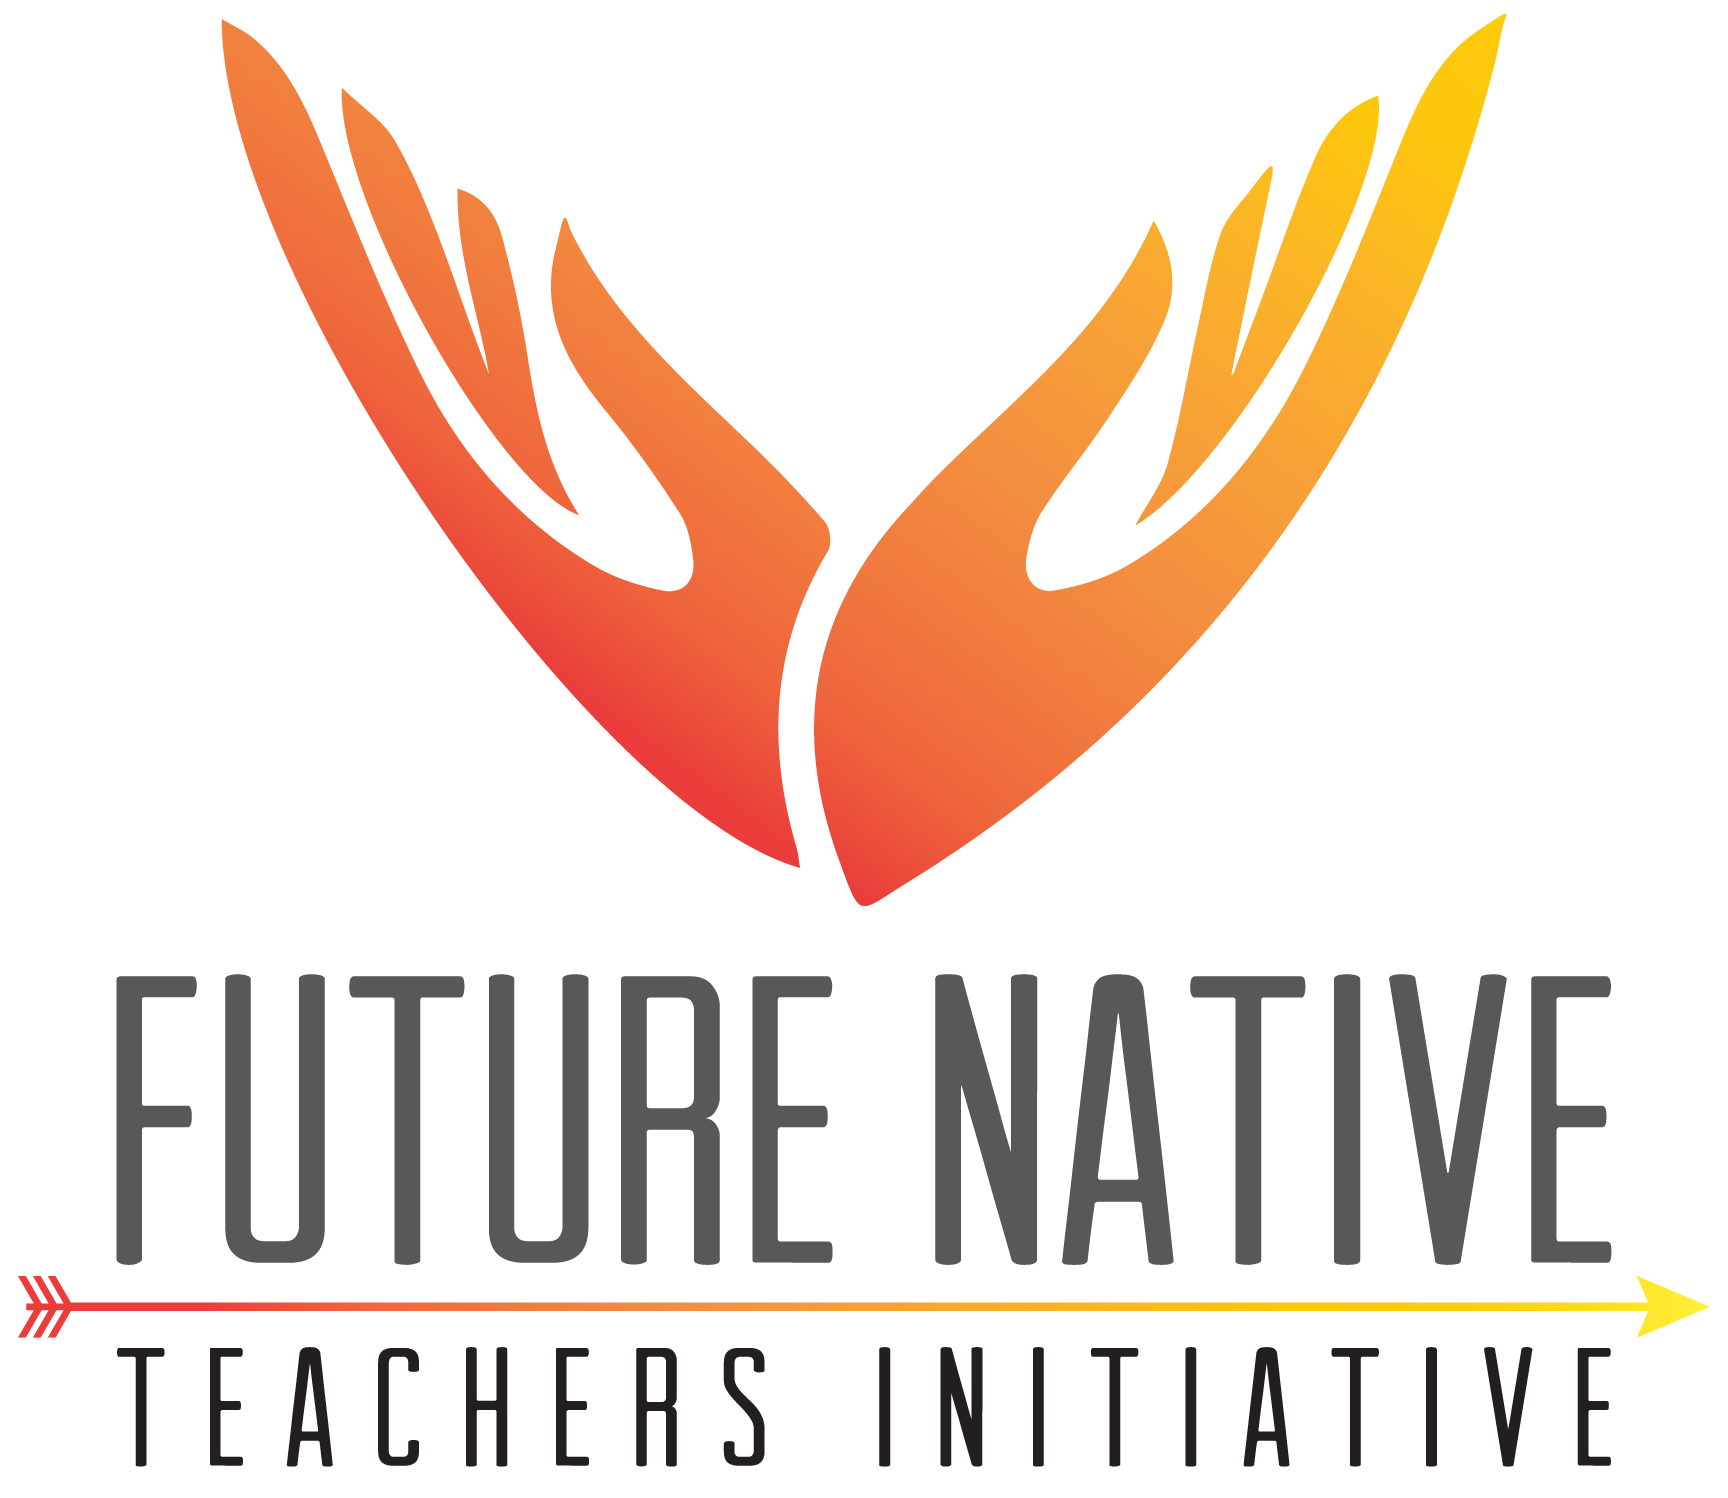 Future Native Teachers Initiative (FNTI) - FNTI inspires native students in Washington state to become educators in our school systems, develop bonds between their native peers, and prepares them for greater success beyond high school.